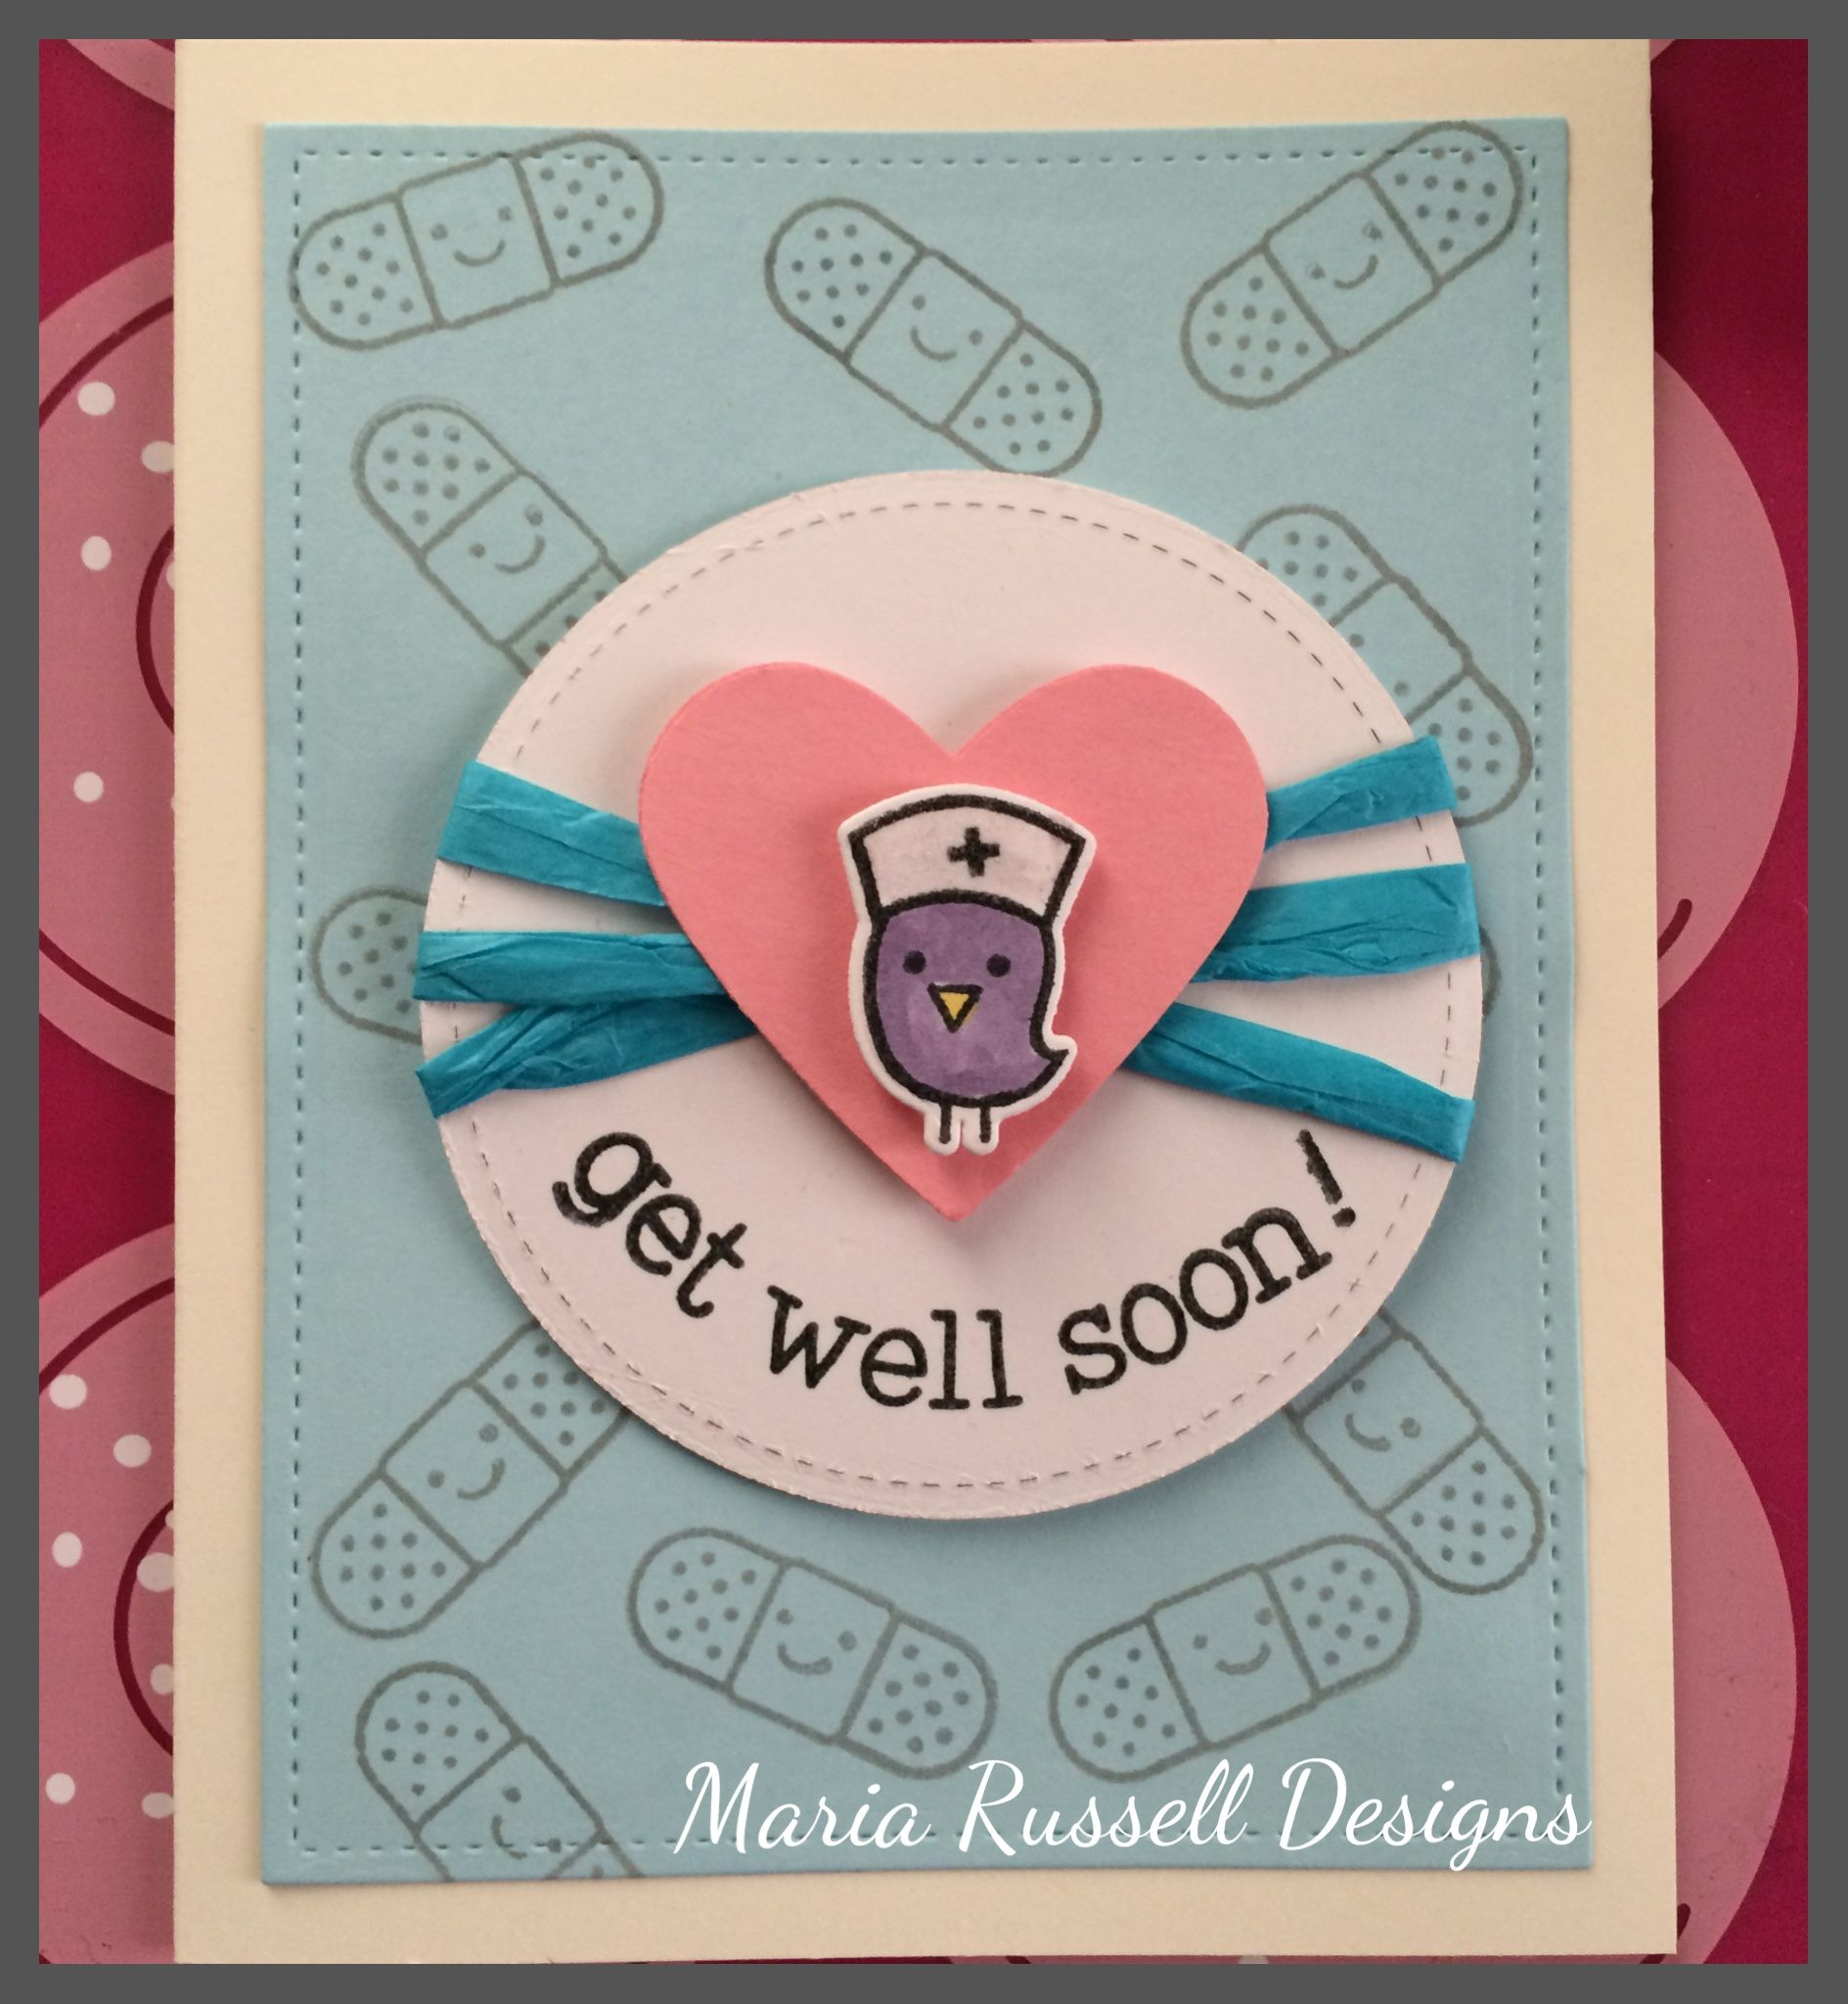 Intriguing Get Well Soon Card Using Lawn Get Well Soon Stamp Set Withcoordinating Get Well Soon Card Using Lawn Get Well Soon Stamp Set Kids Get Well Soon Cards Homemade Get Well Soon Cards cards Get Well Soon Cards